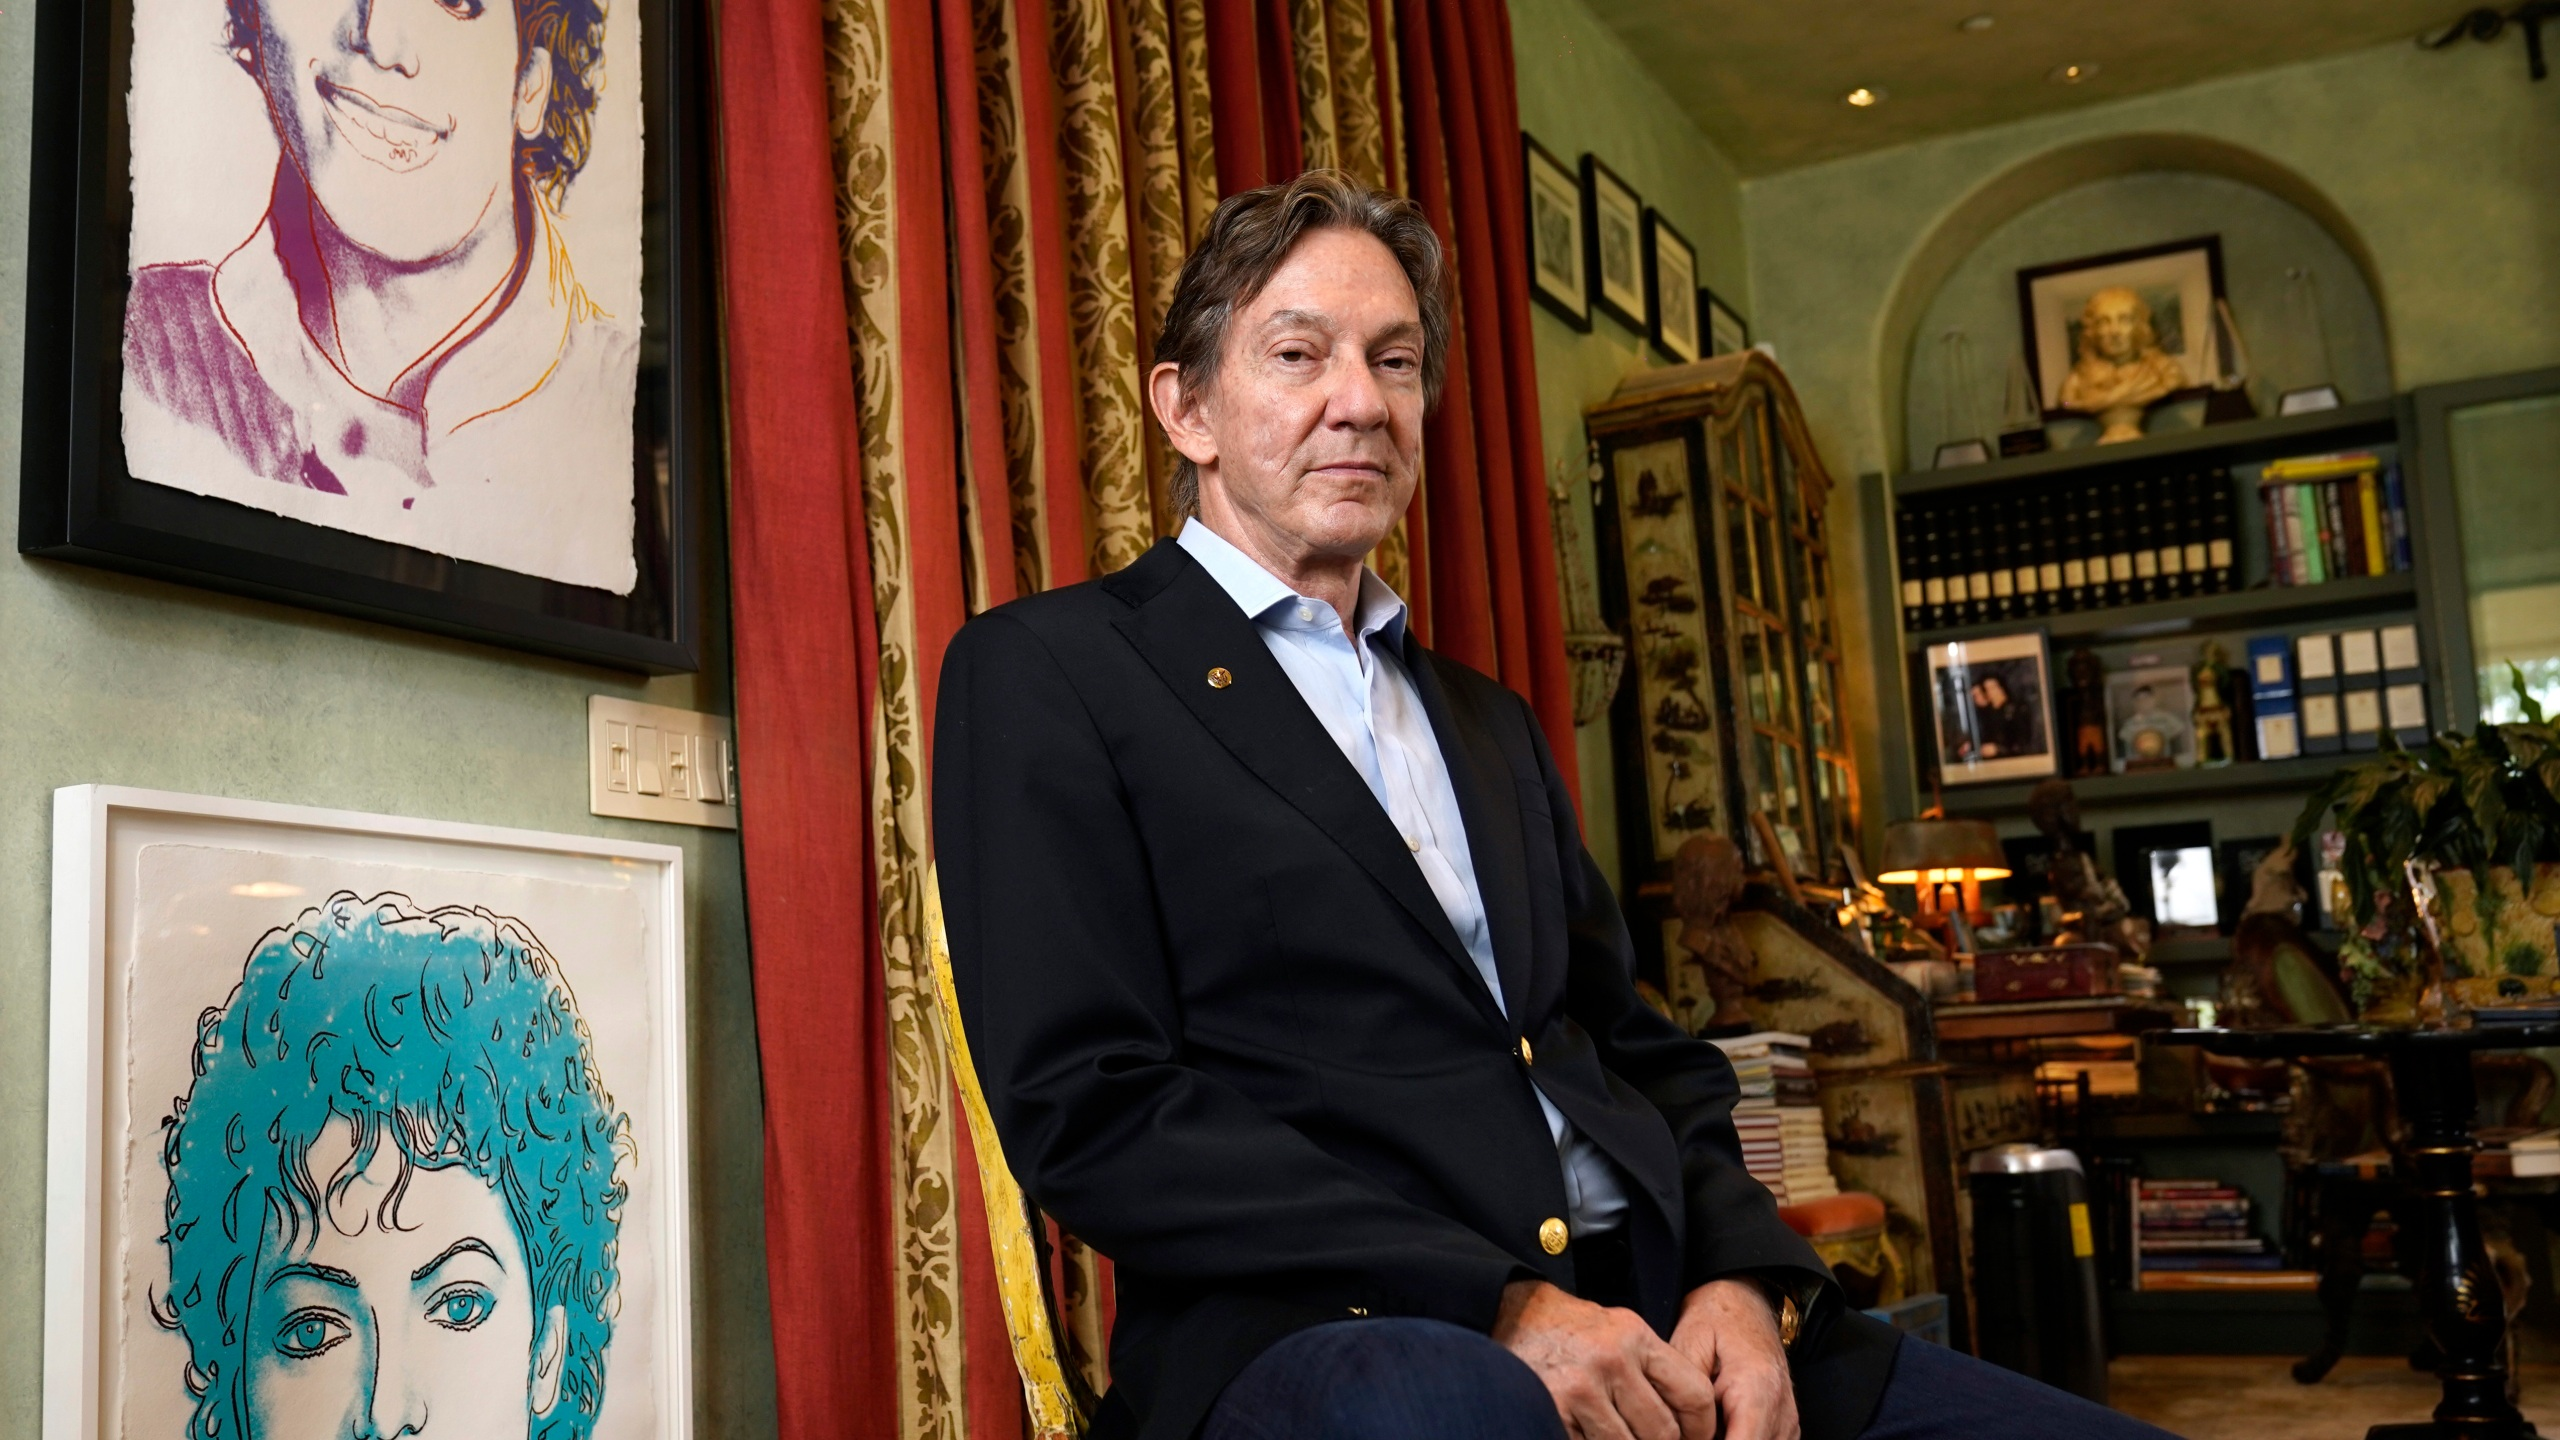 Entertainment lawyer and Michael Jackson Estate co-executor John Branca poses for a portrait alongside Andy Warhol prints of Jackson on July 8, 2021, at his home in Los Angeles. (Chris Pizzello/Associated Press)